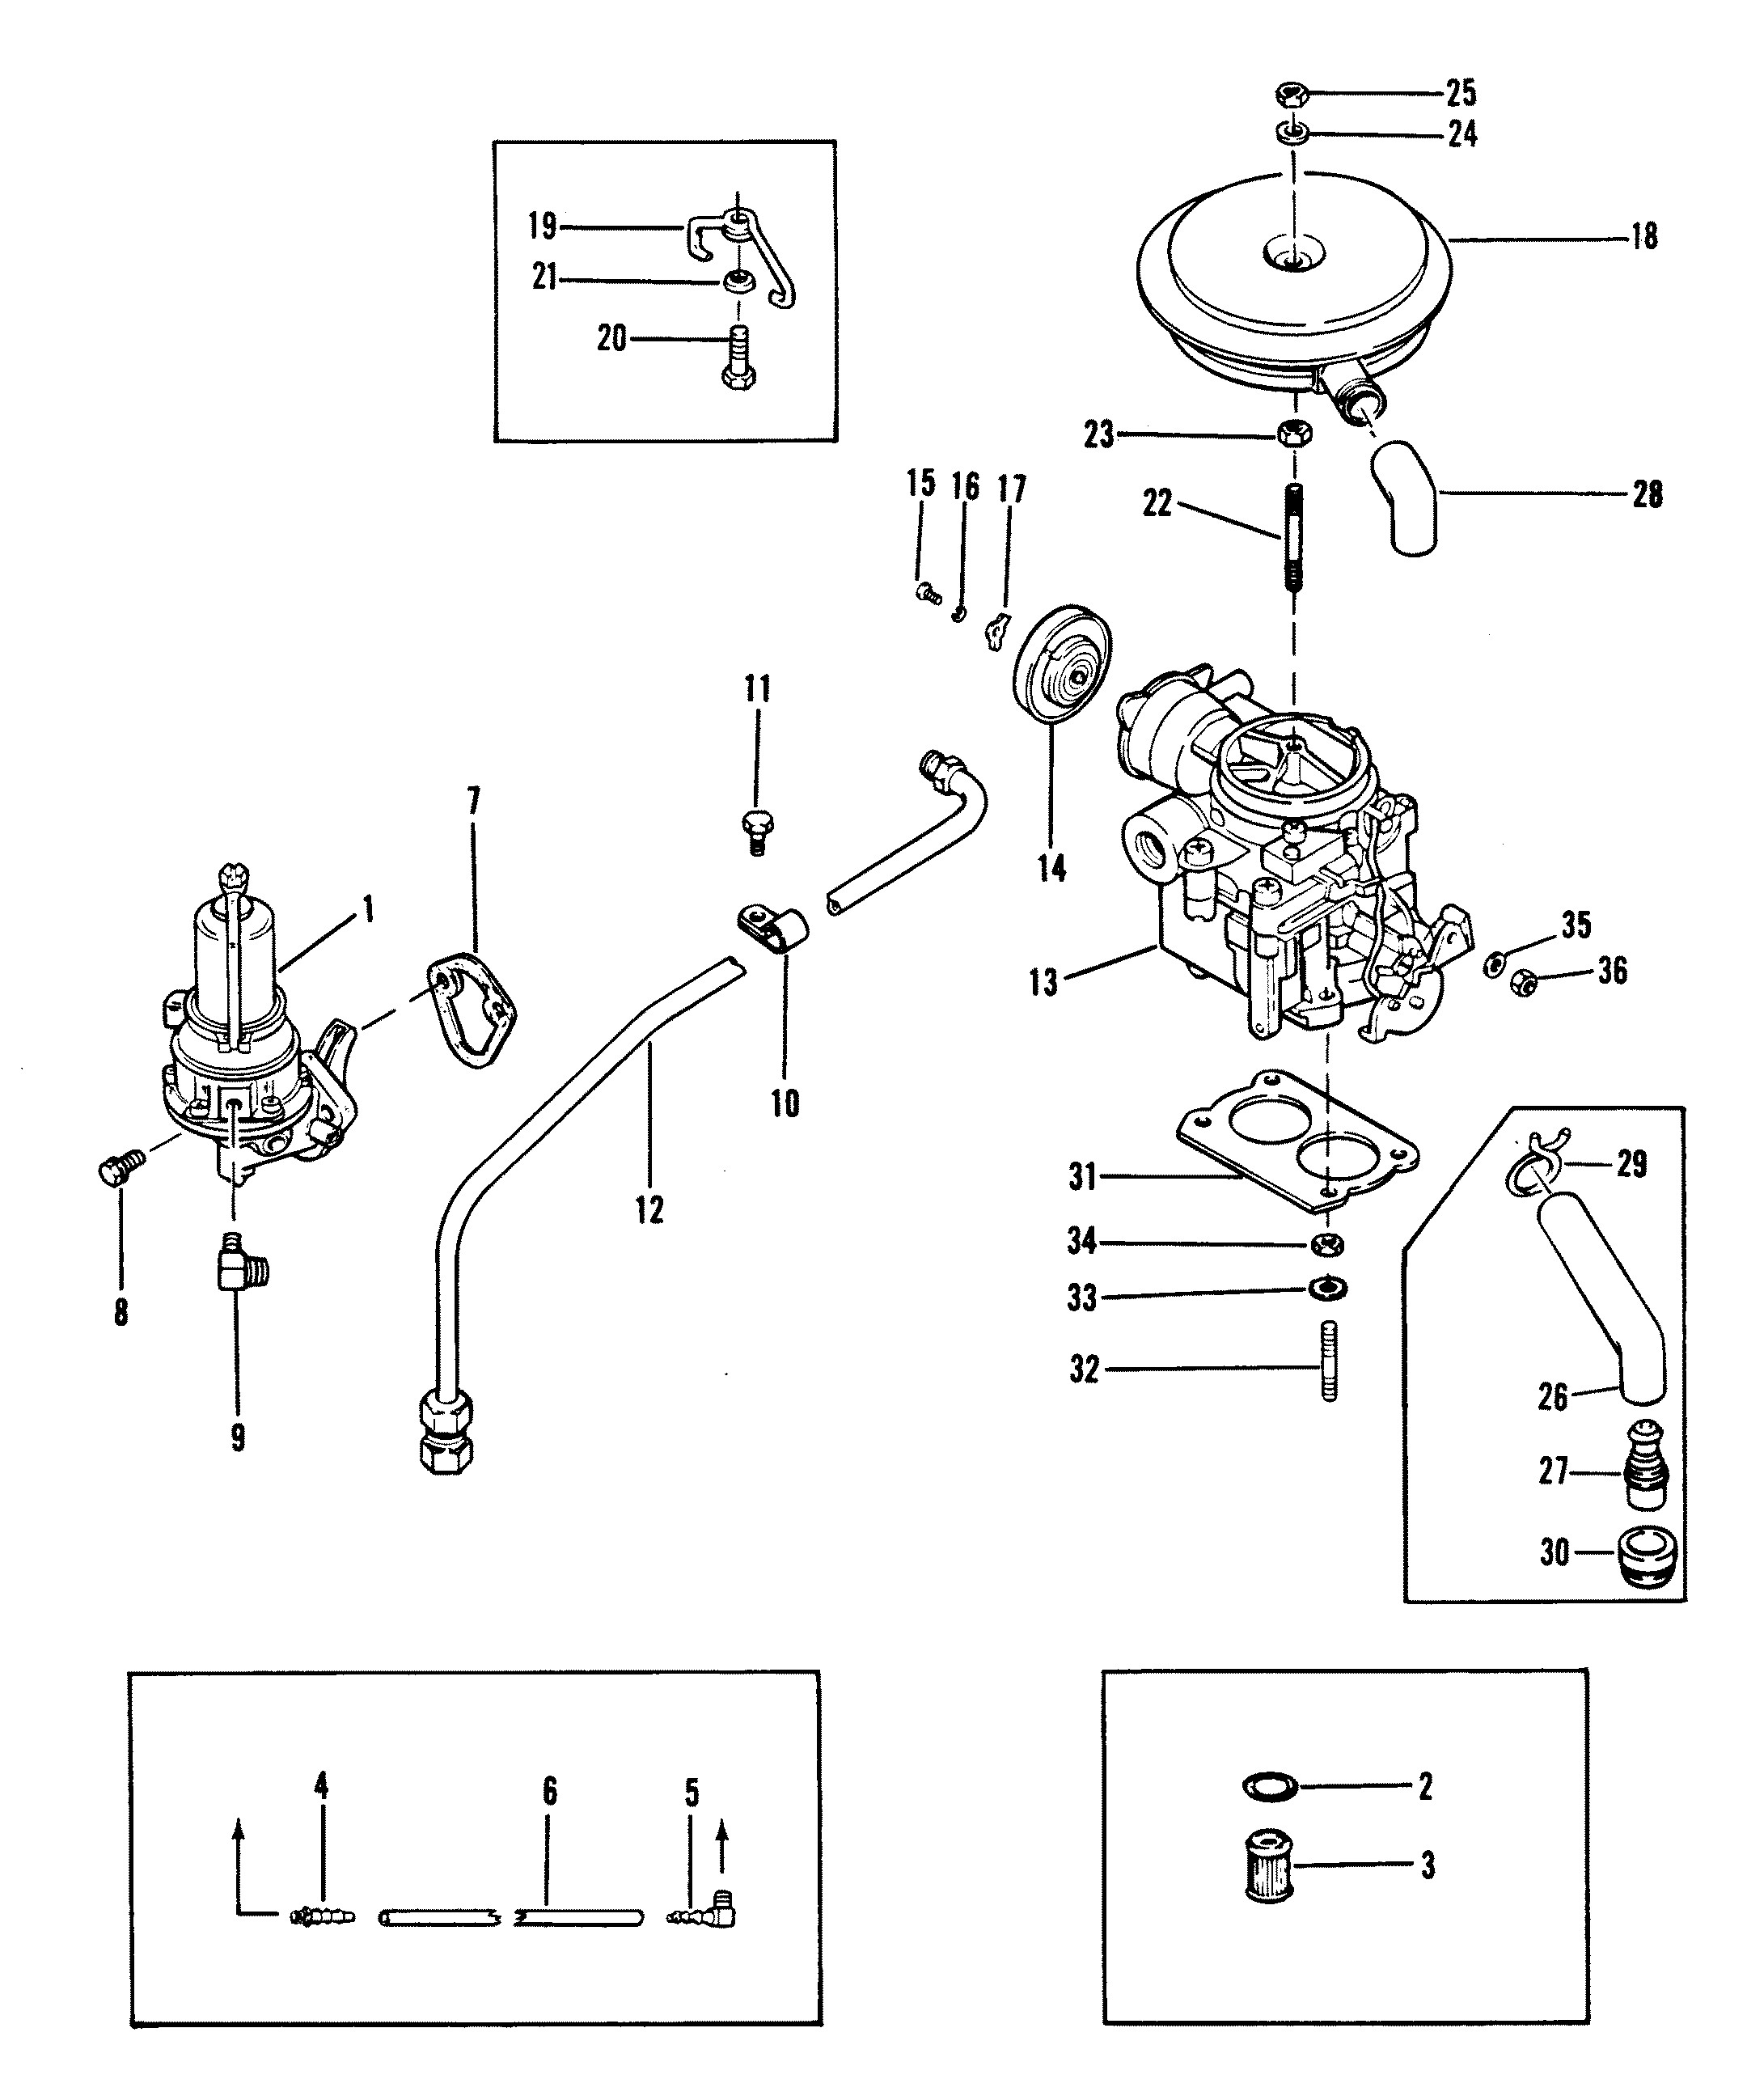 Gm Serpentine Belt Routing Diagram